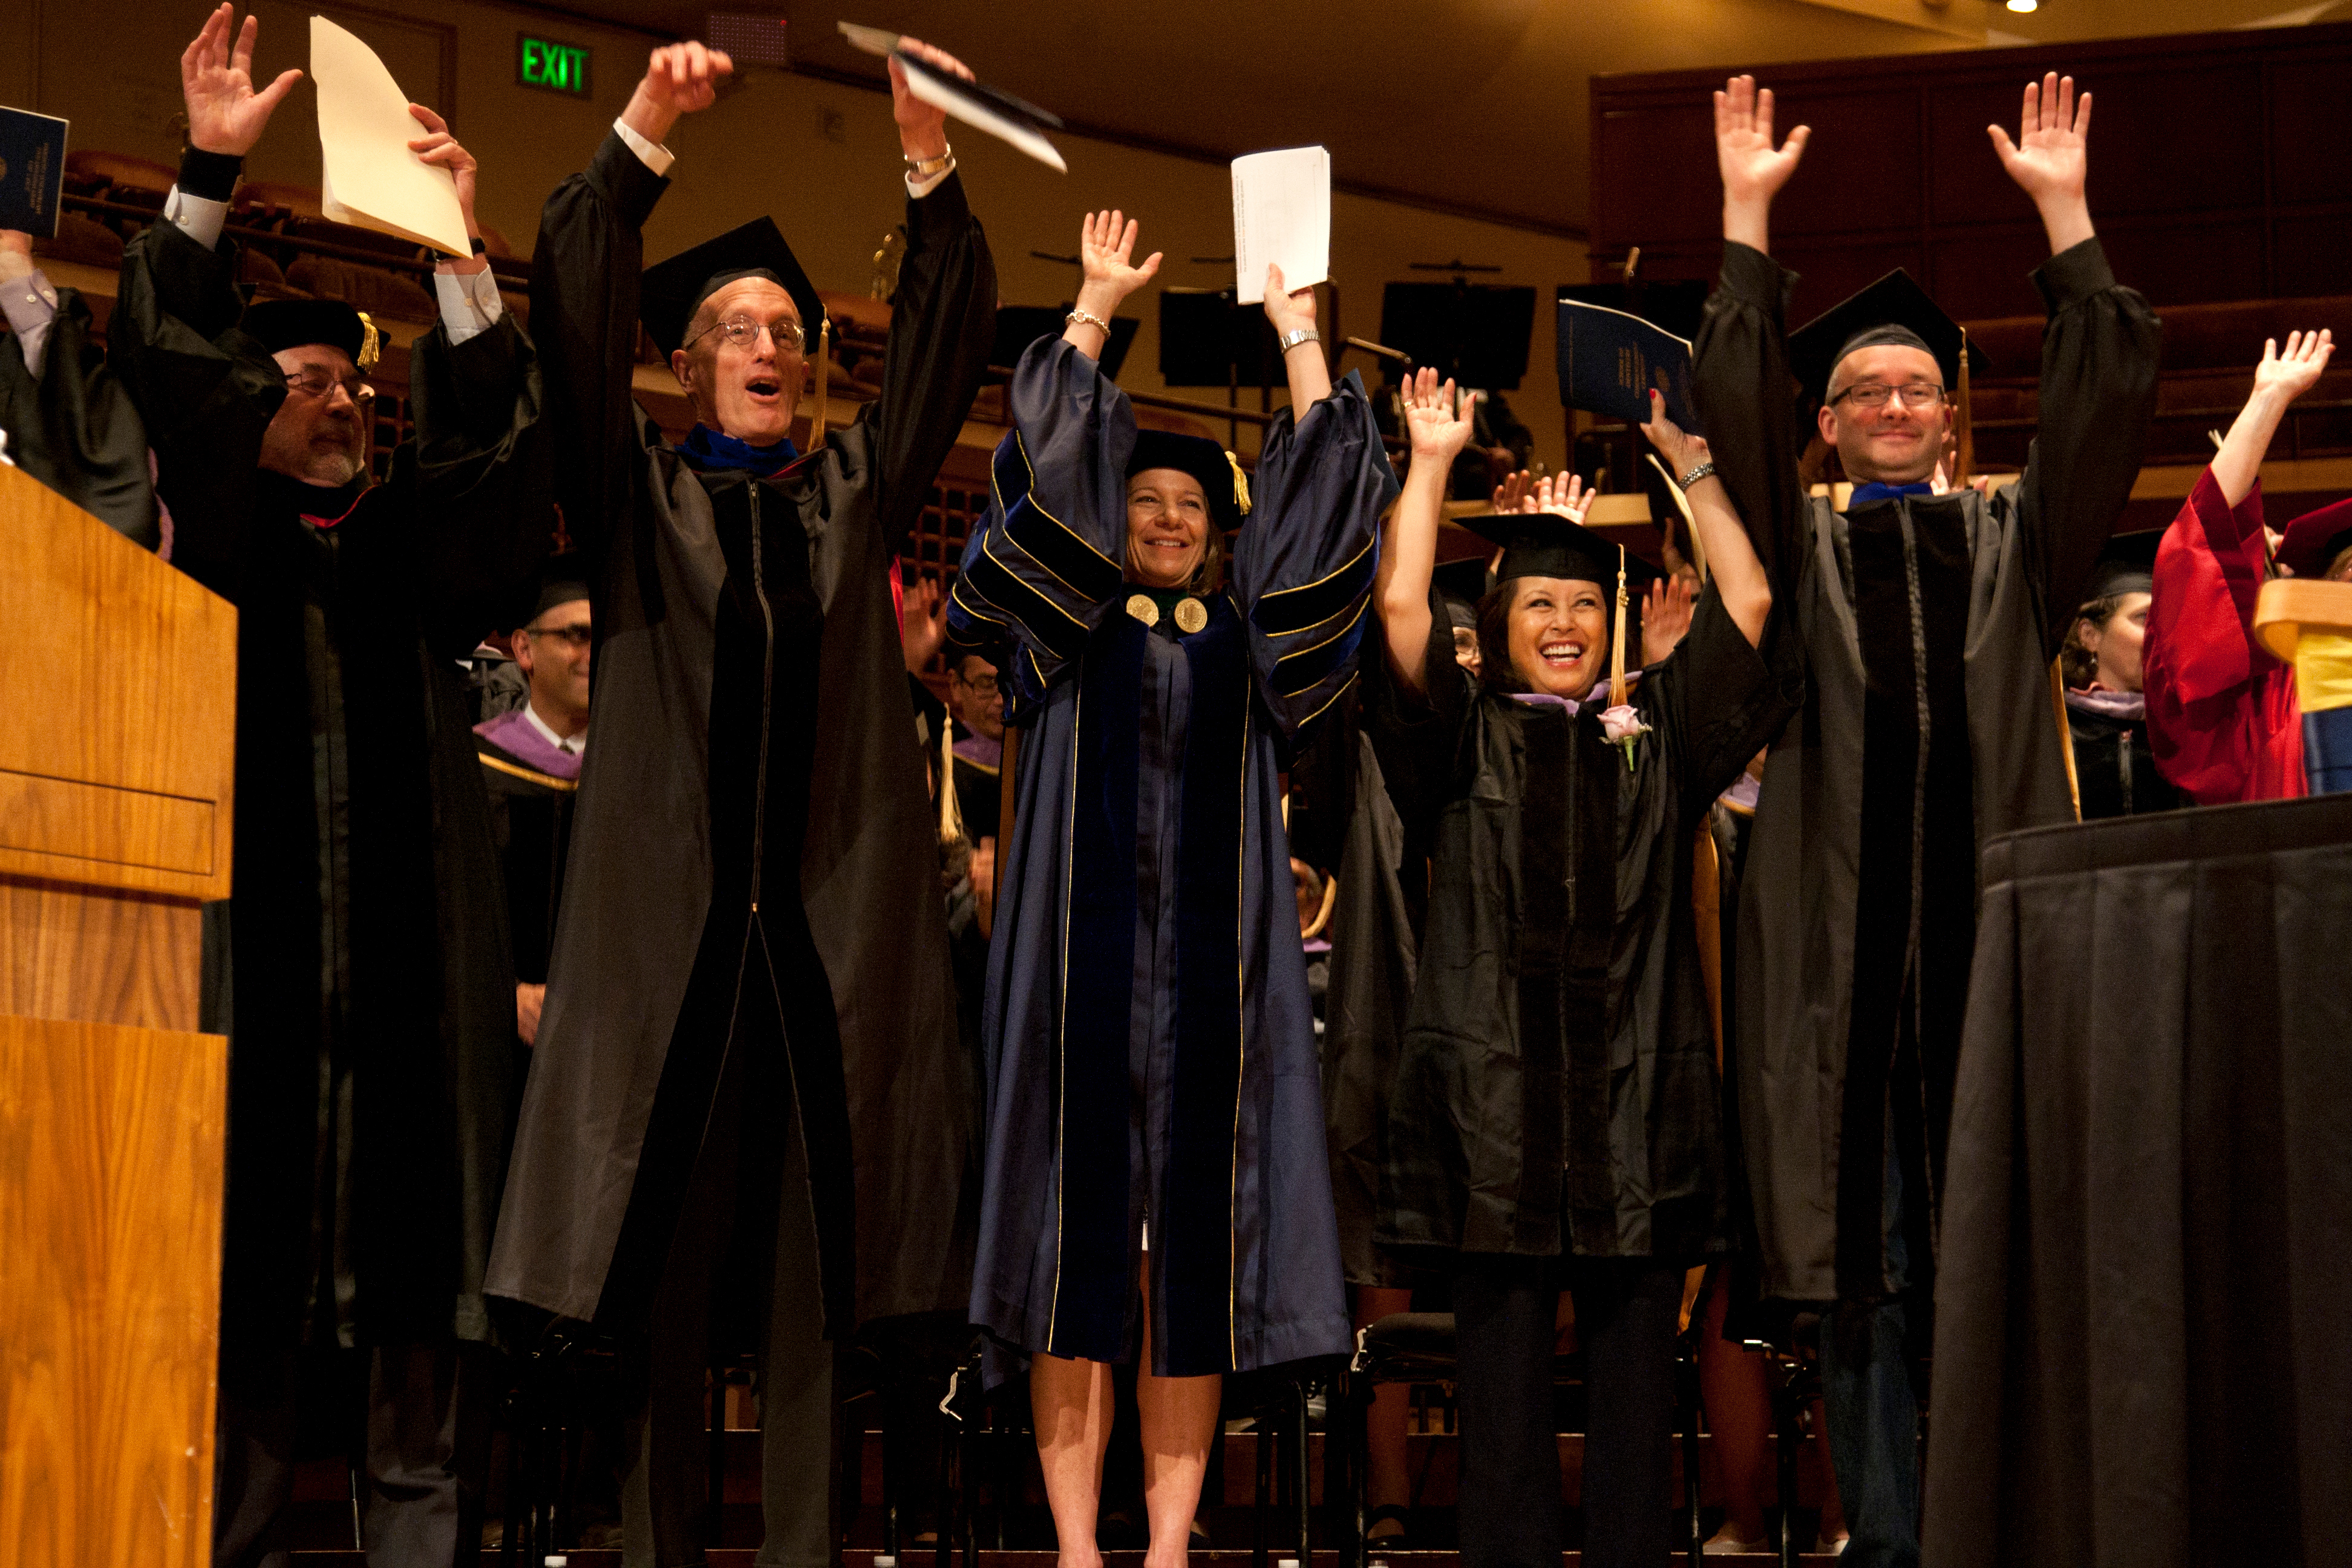 UCSF Chancellor Susan Desmond-Hellmann, MD, MPH, was among those to participate in a wave during the School of Dentistry's commencement ceremony.